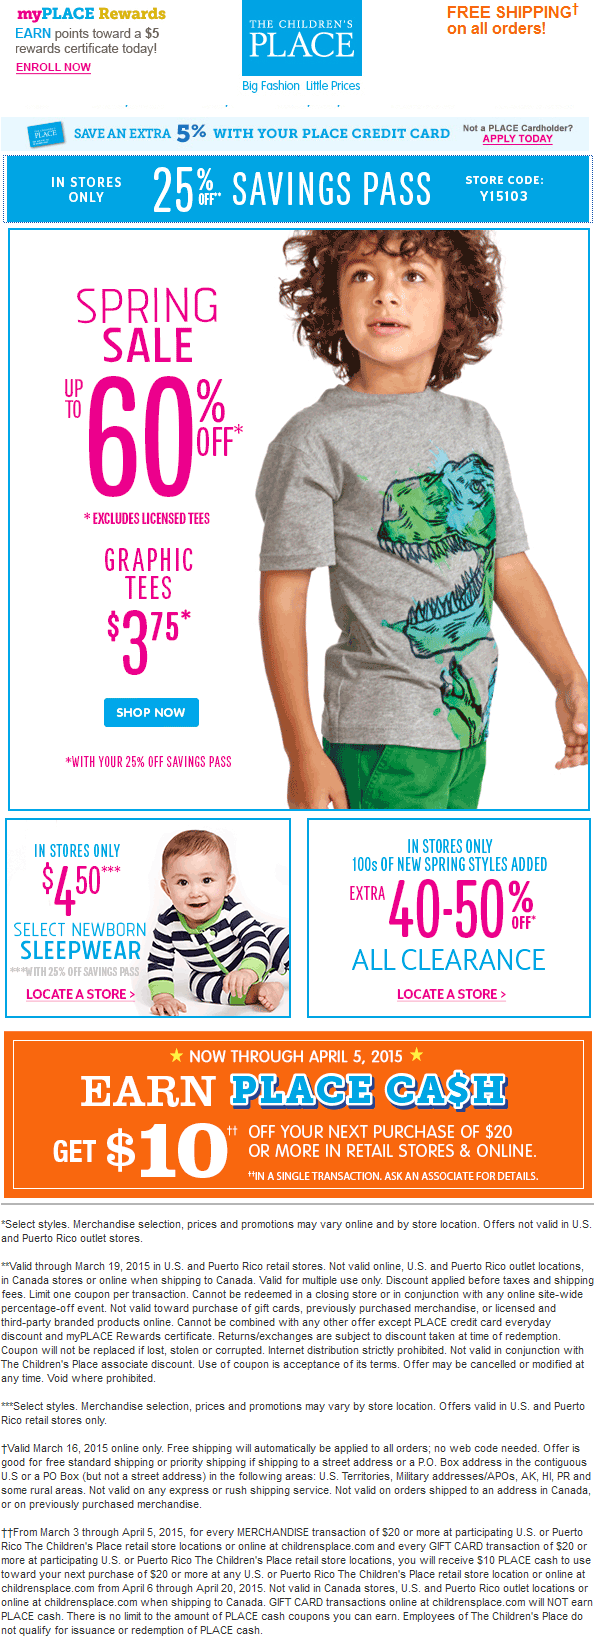 Childrens Place Coupon July 2017 25% off at The Childrens Place